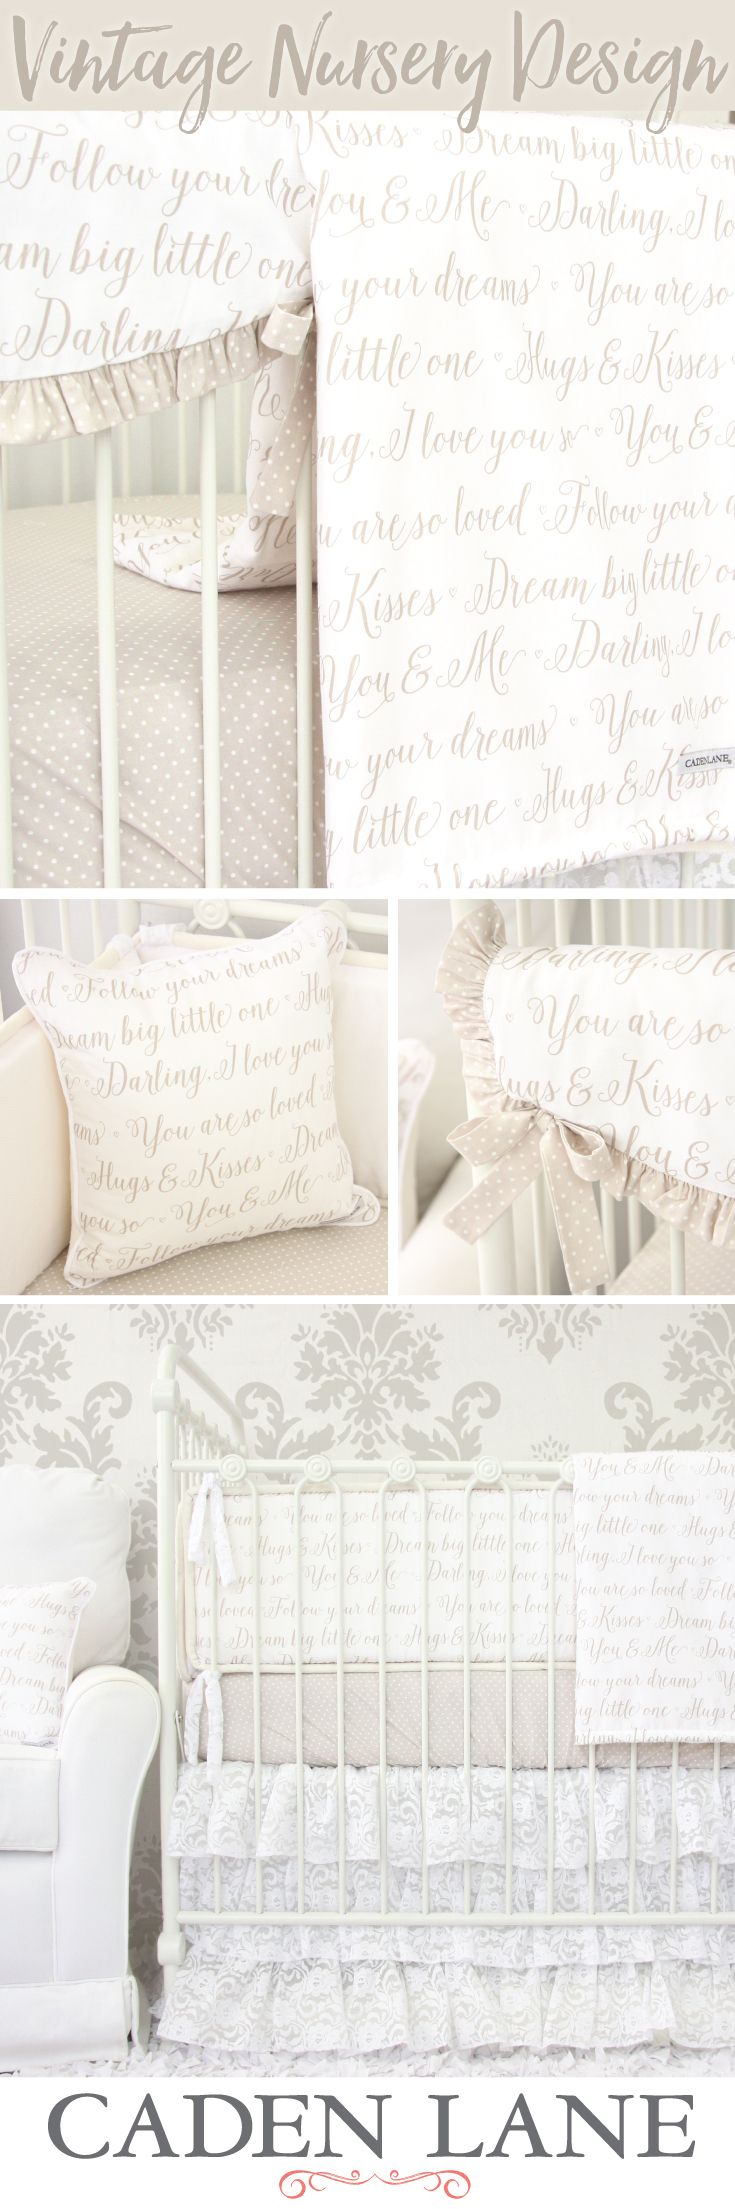 Create your perfect vintage nursery with this vintage inspired crib bedding.  A few of our favorite sayings create a unique look and the neutral tones make this bedding great for adapting to any style vintage nursery design.